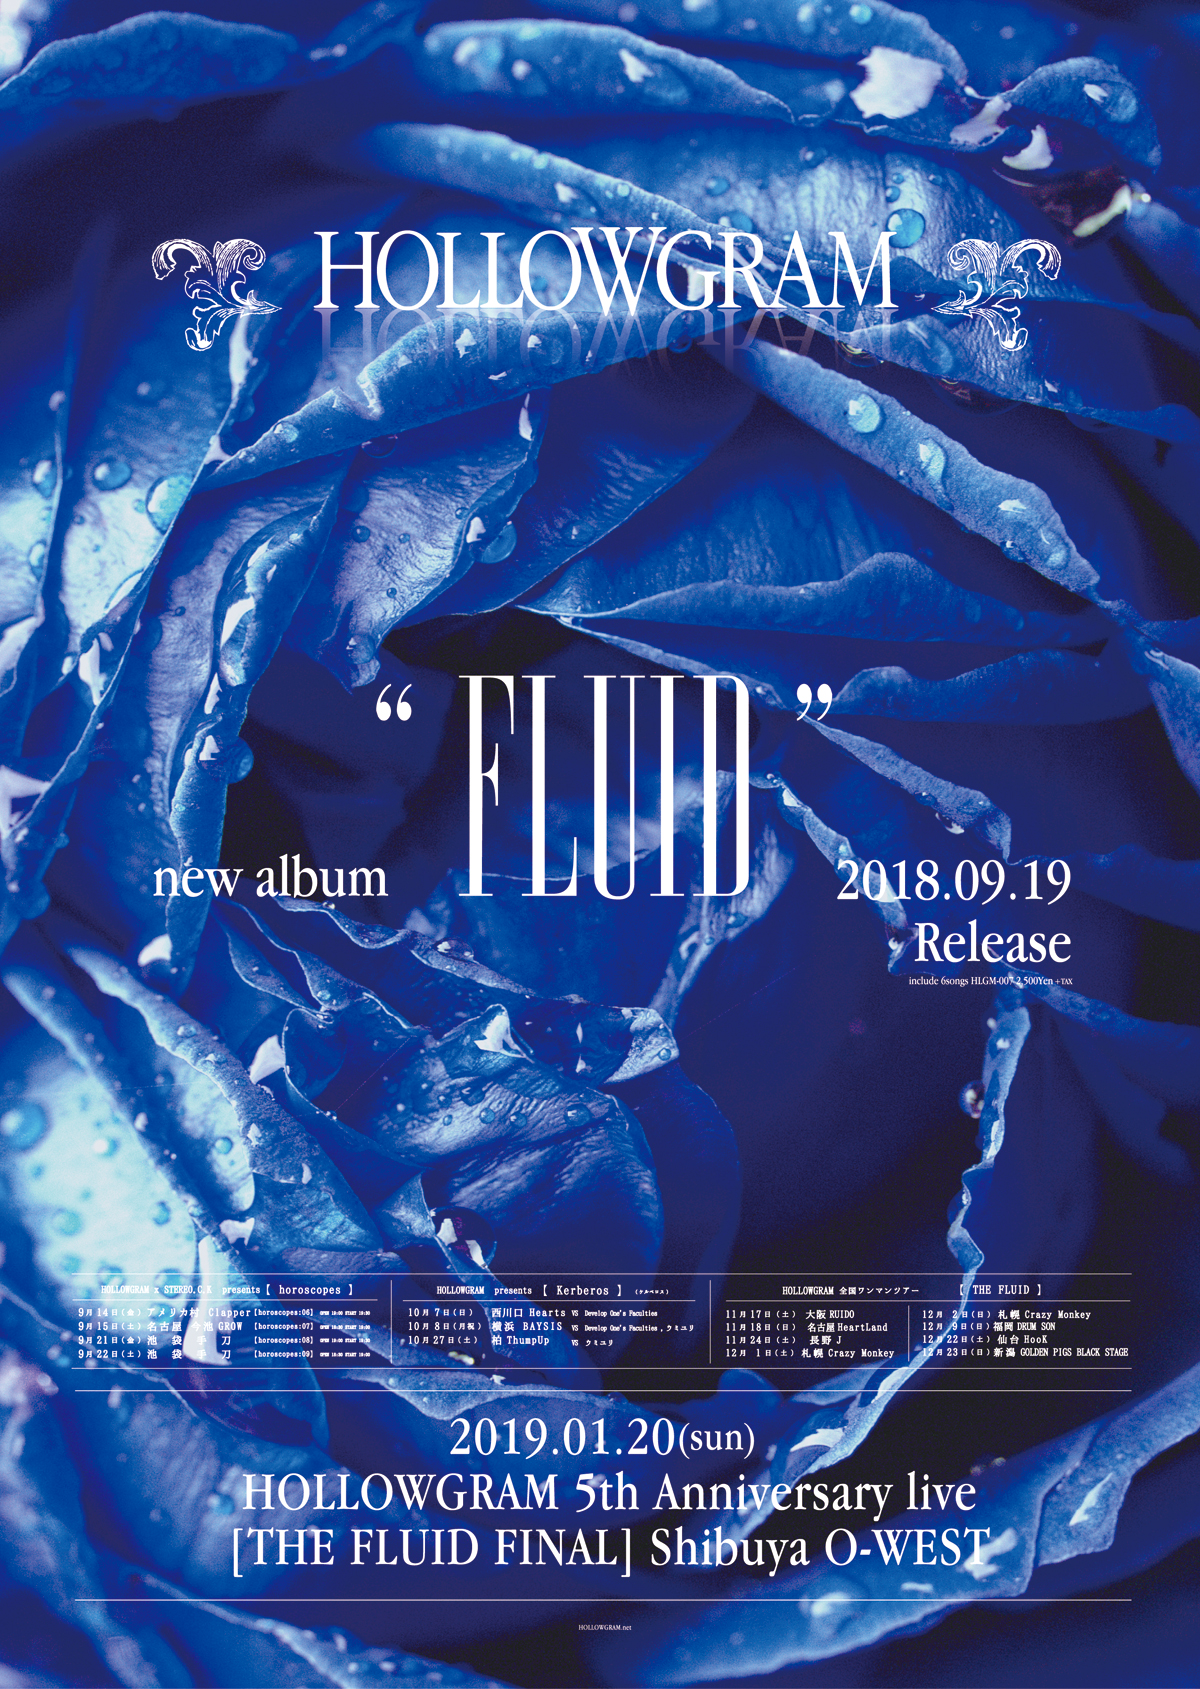 "HOLLOWGRAM HOLLOWGRAM new album""FLUID"" 2018.09.19 Release / 2019.01.20(sun) HOLLOWGRAM 5th Anniversary [THE FLUID FINAL] Shibuya O-WEST 